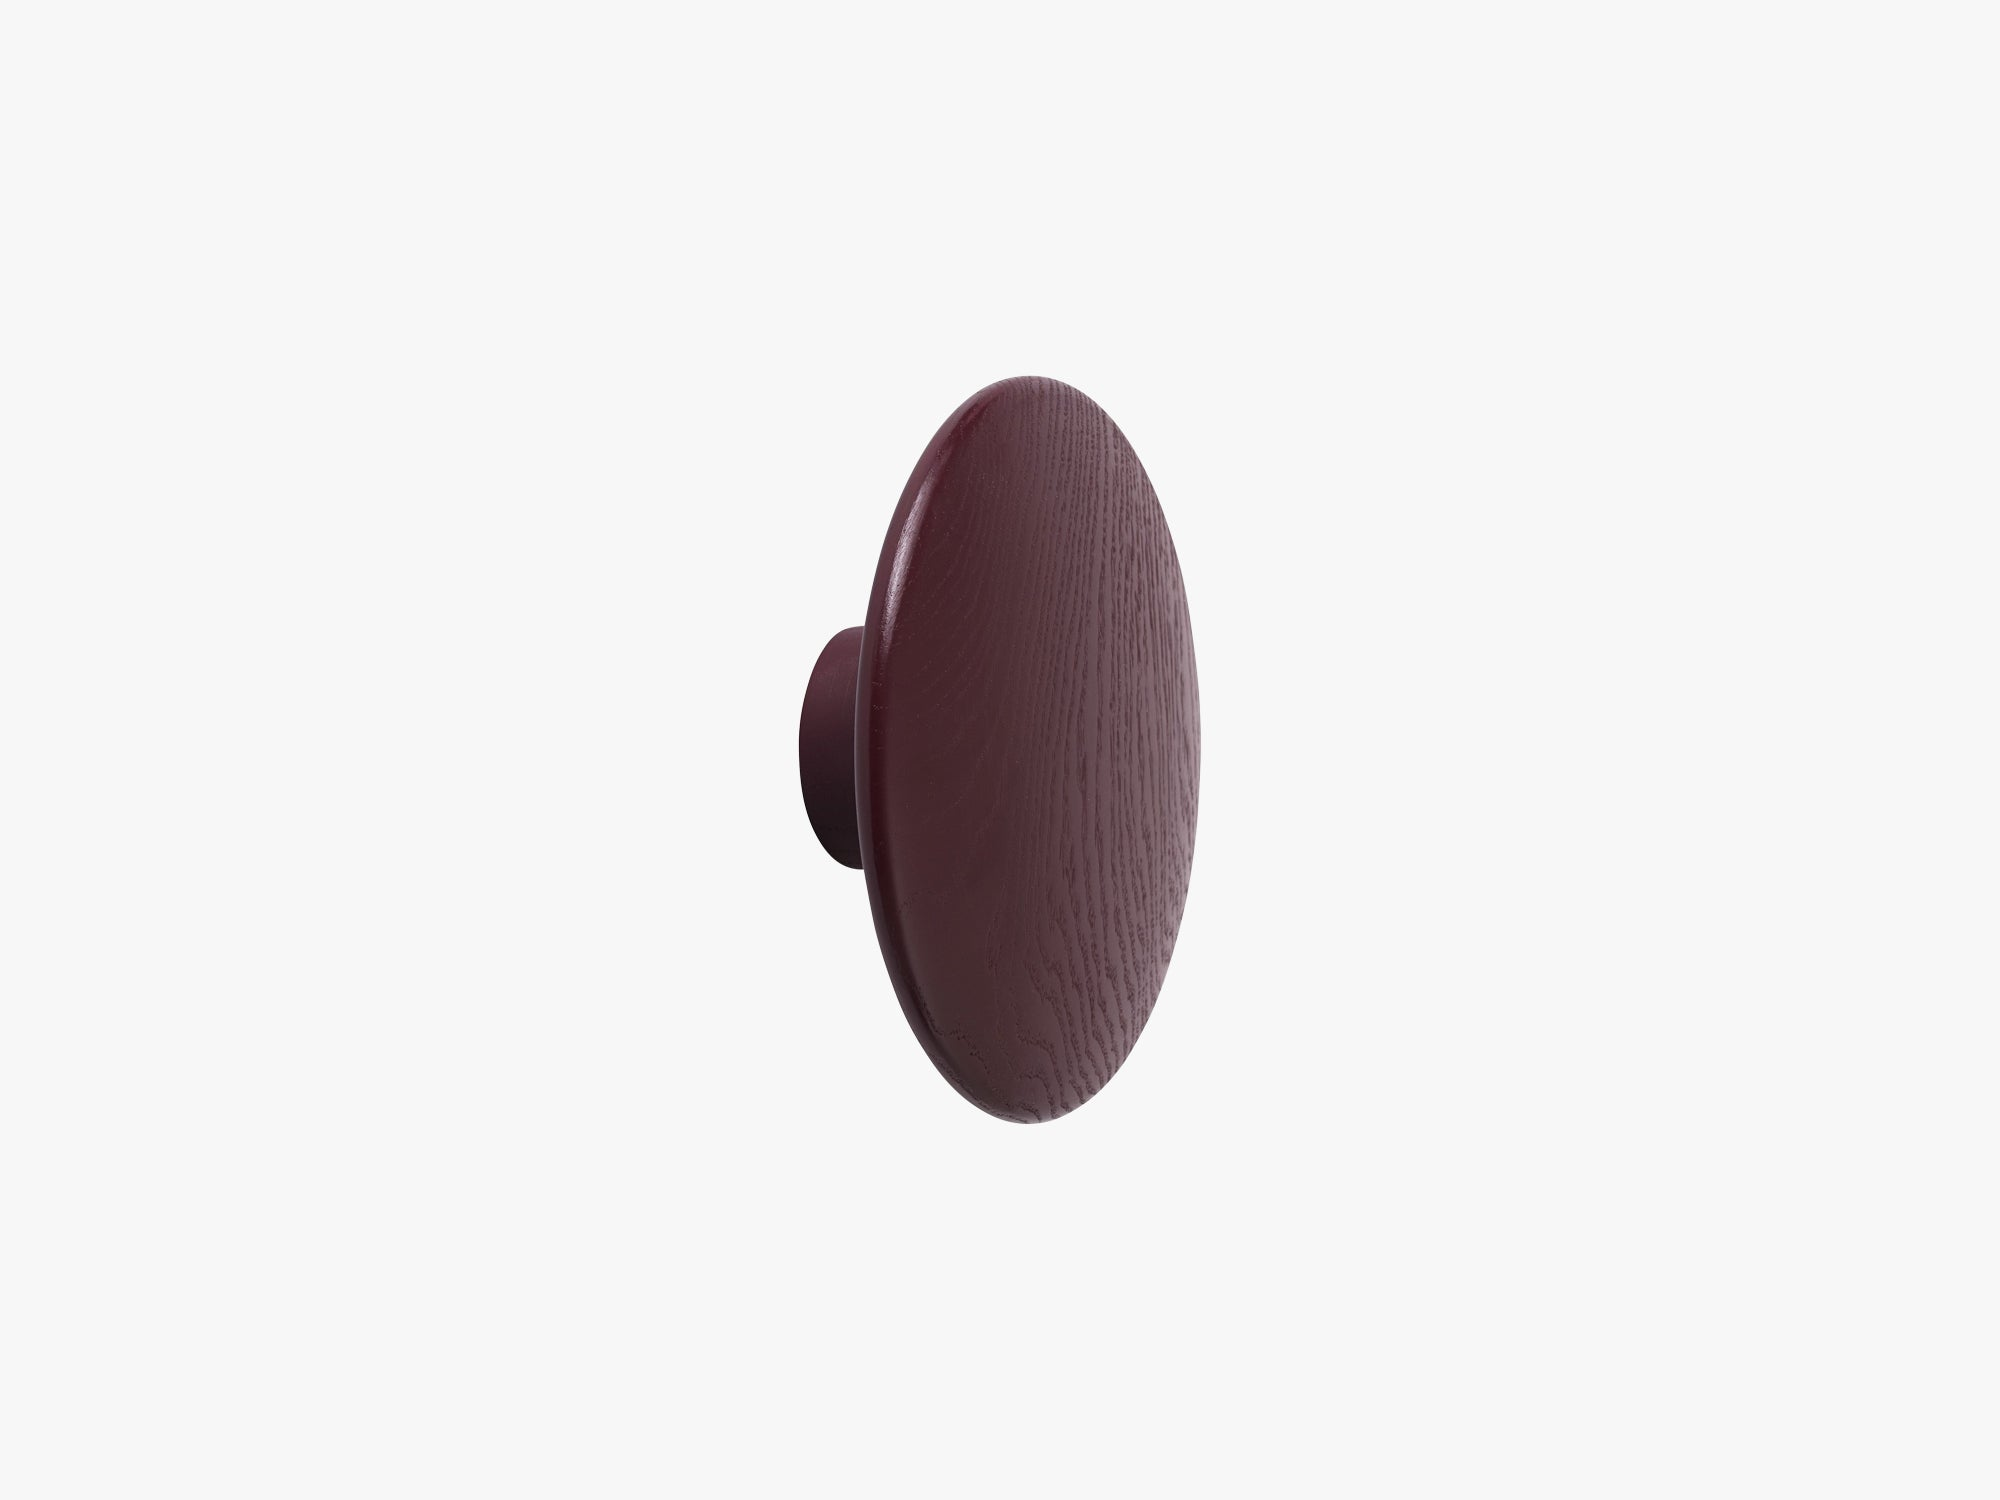 The Dots Coat Hooks / Large, Burgundy fra Muuto